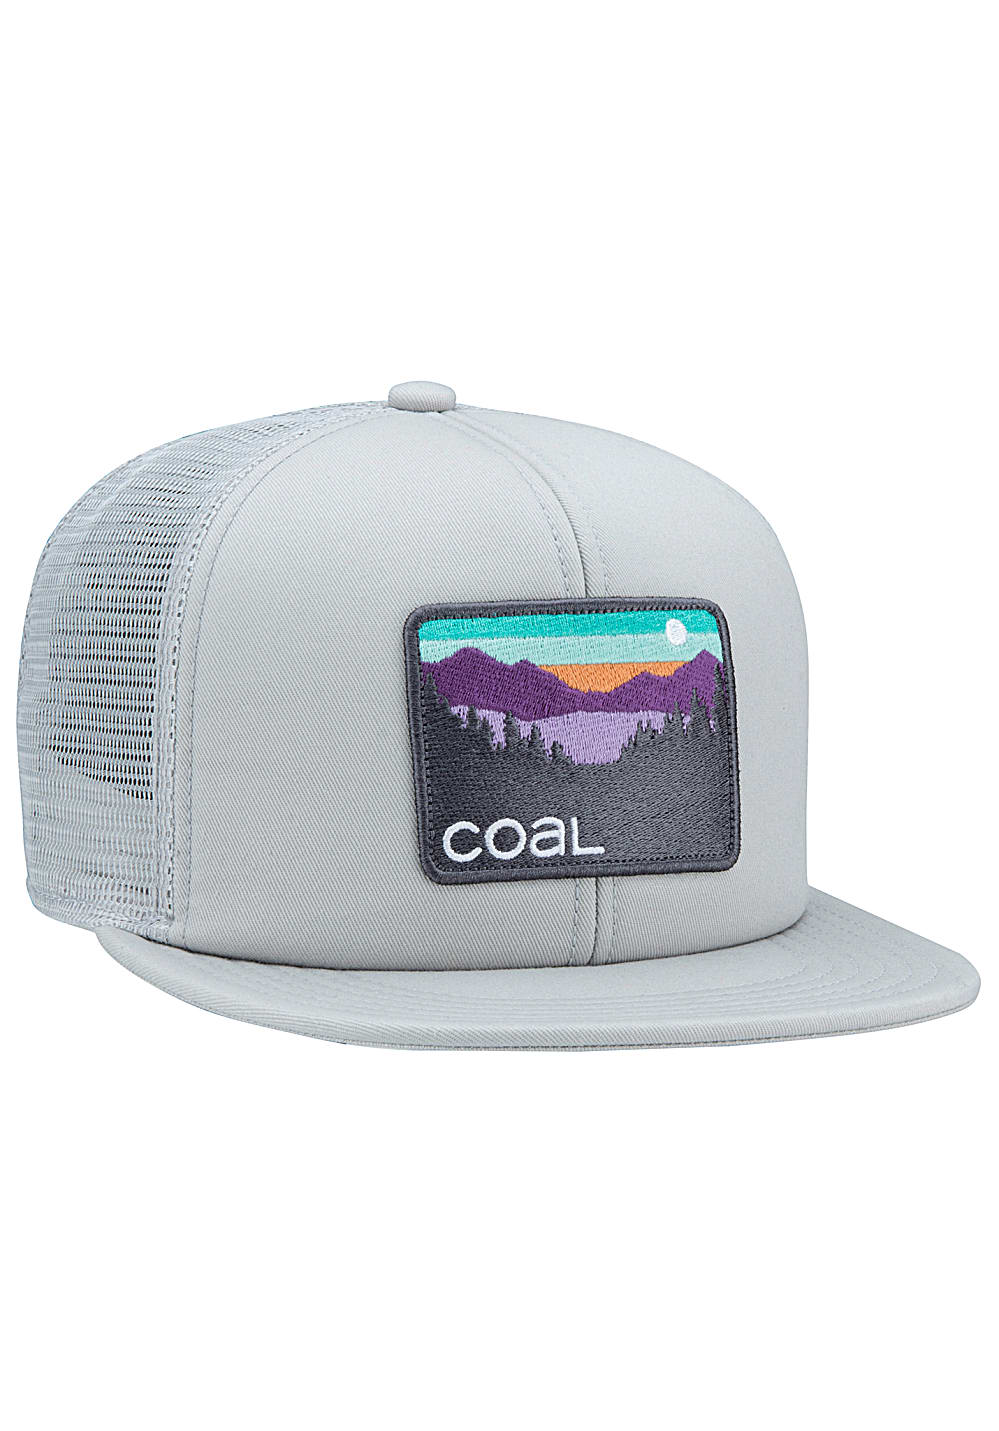 00b403fa4b94d Coal The Hauler Trucker Cap - Grau